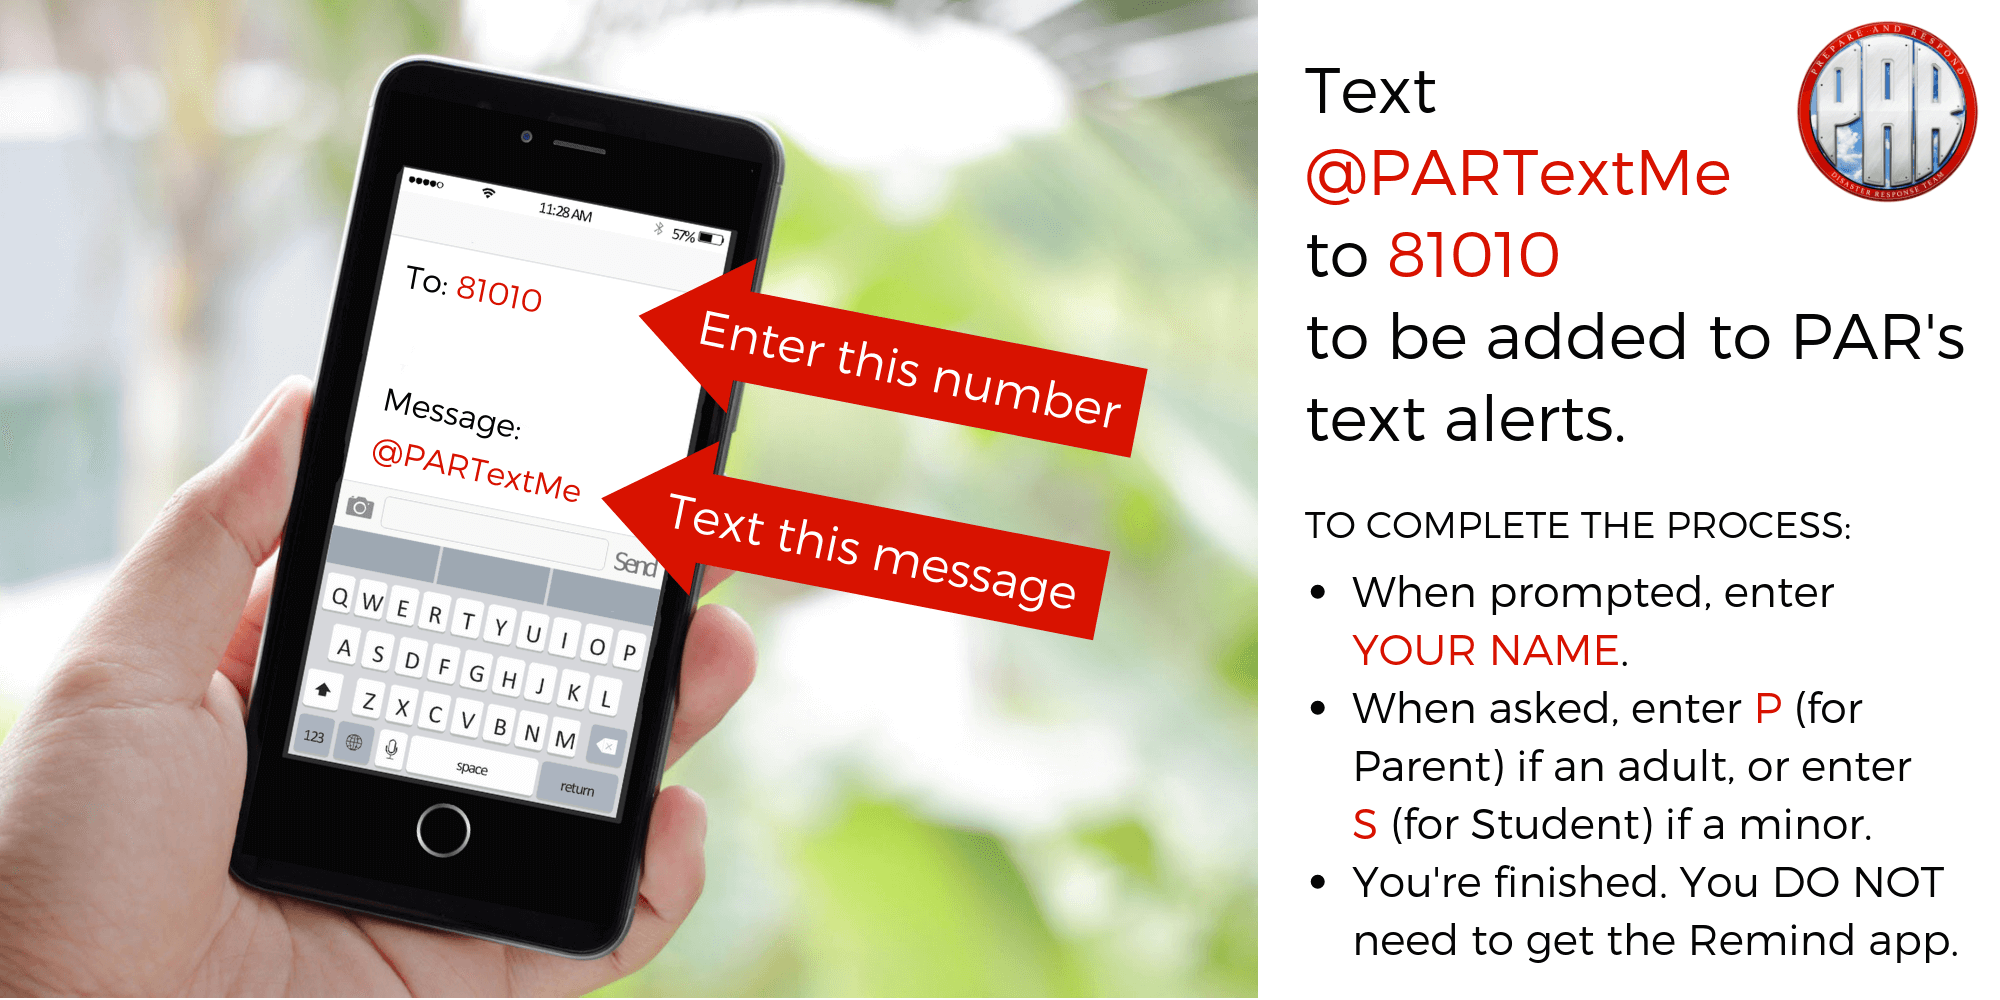 Sign up for PAR Text Alerts